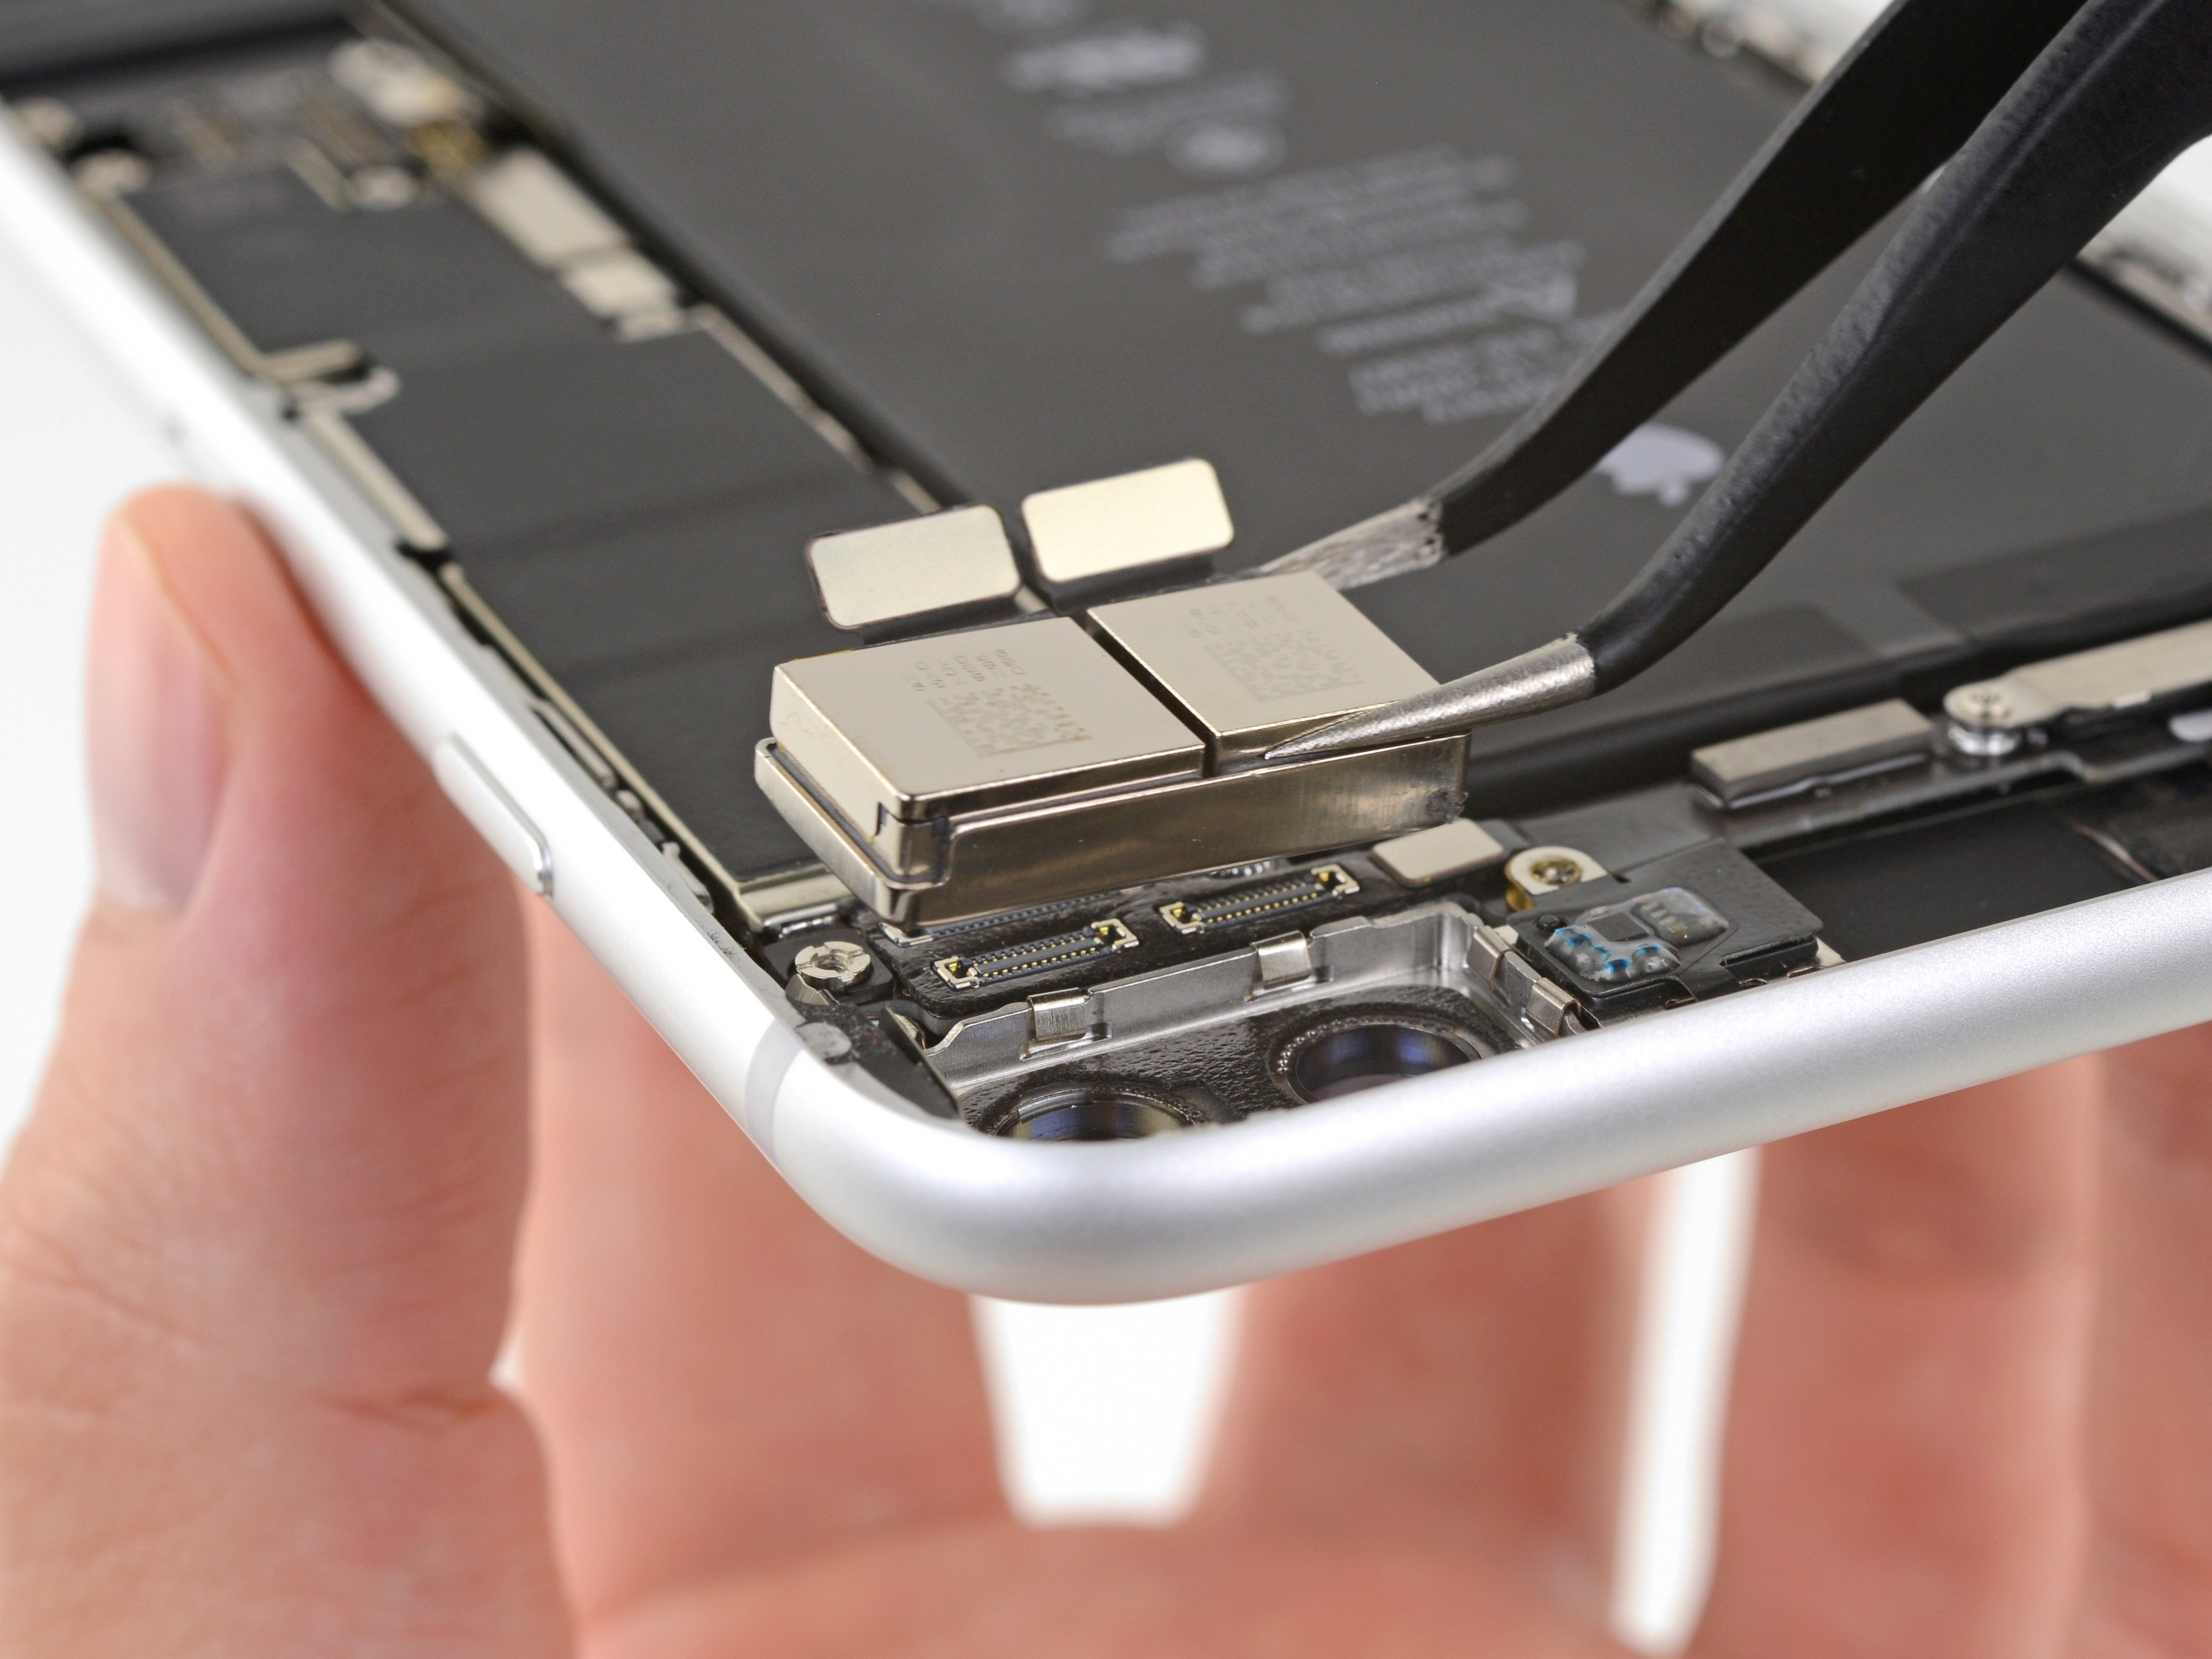 iPhone 8 Plus Rear-Facing Cameras Replacement - iFixit